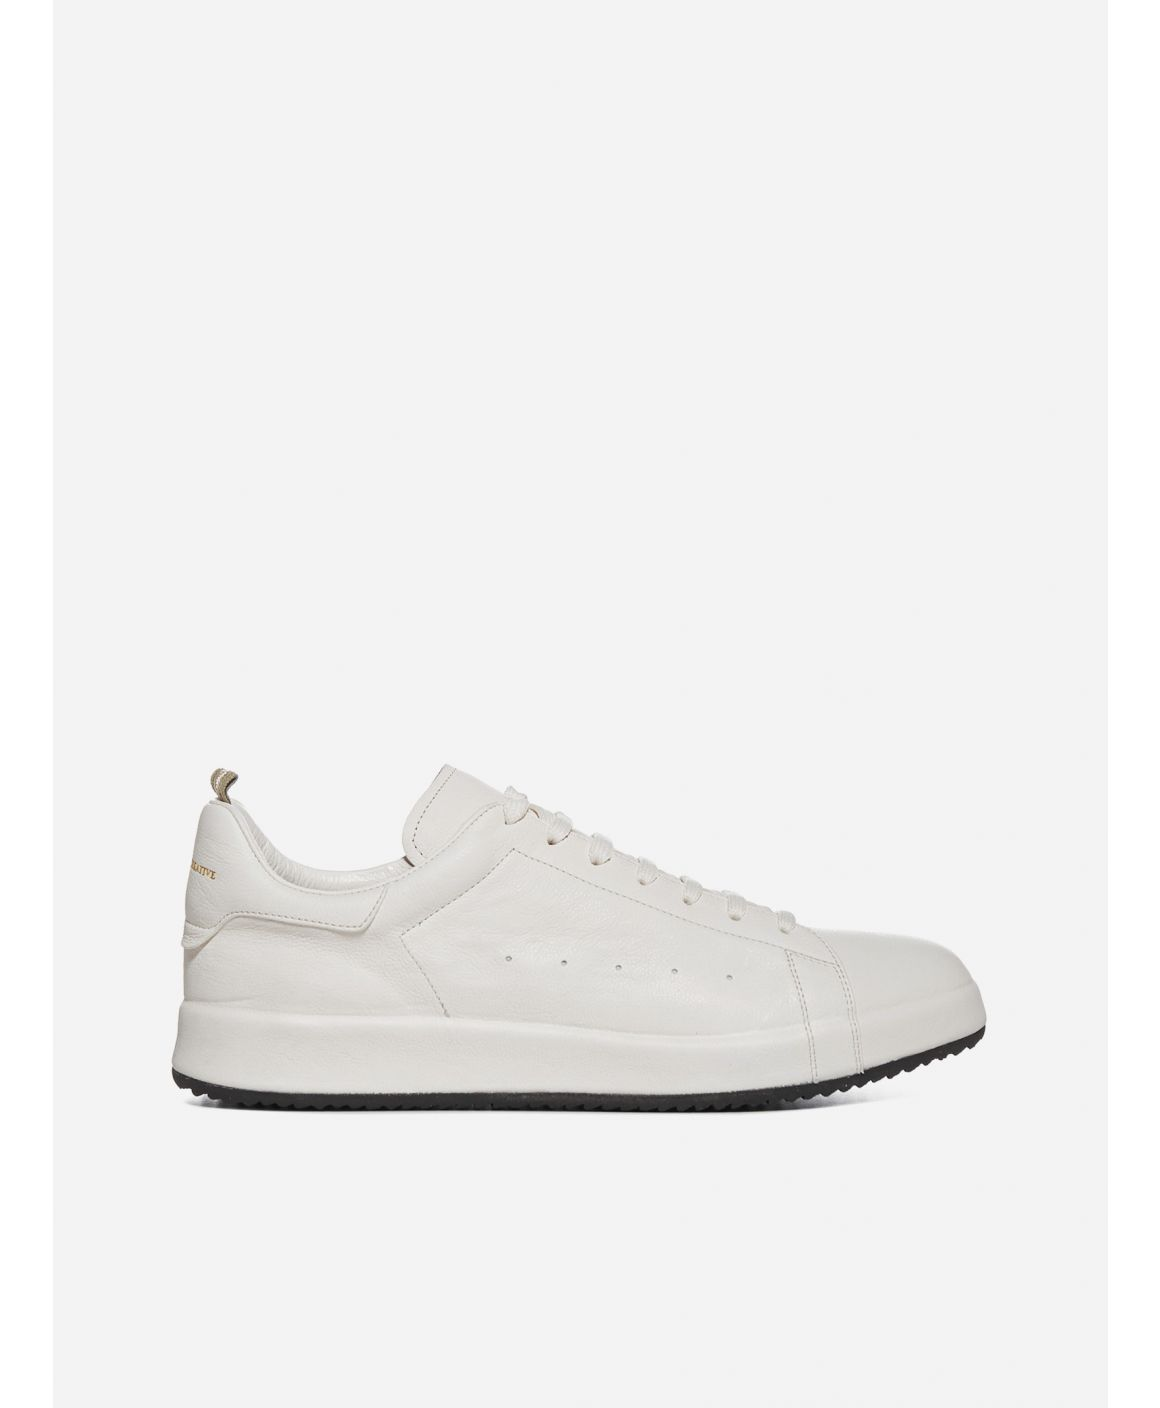 Ace leather sneakers